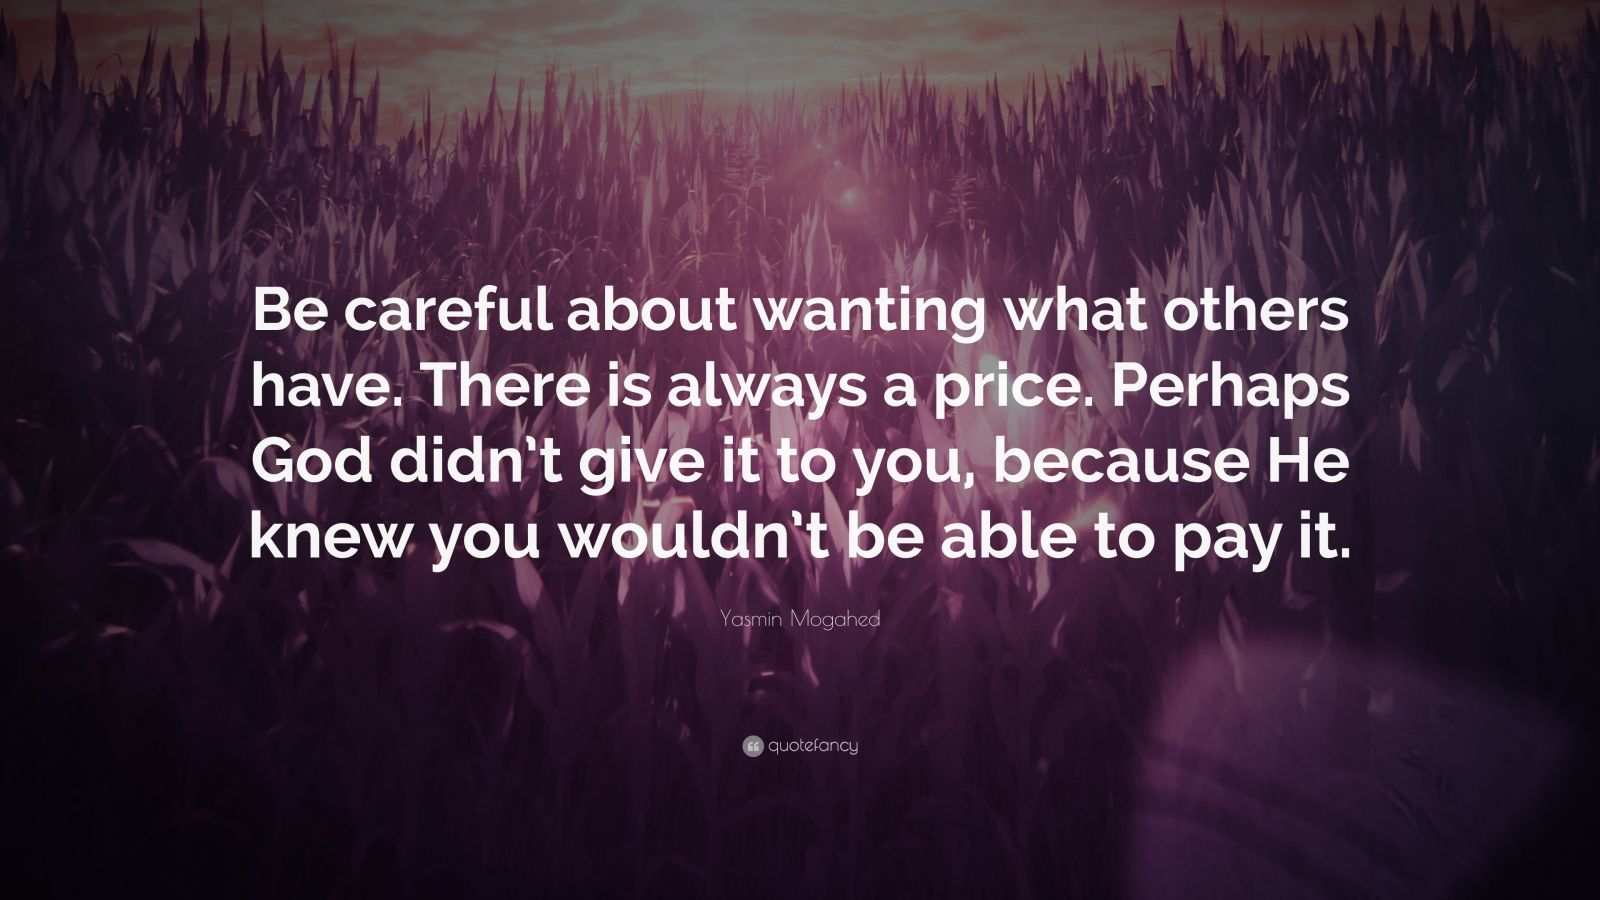 """Yasmin Mogahed Quote: """"Be careful about wanting what others have. There is always a price. Perhaps God didn't give it to you, because He knew you wouldn't be able to pay it."""""""